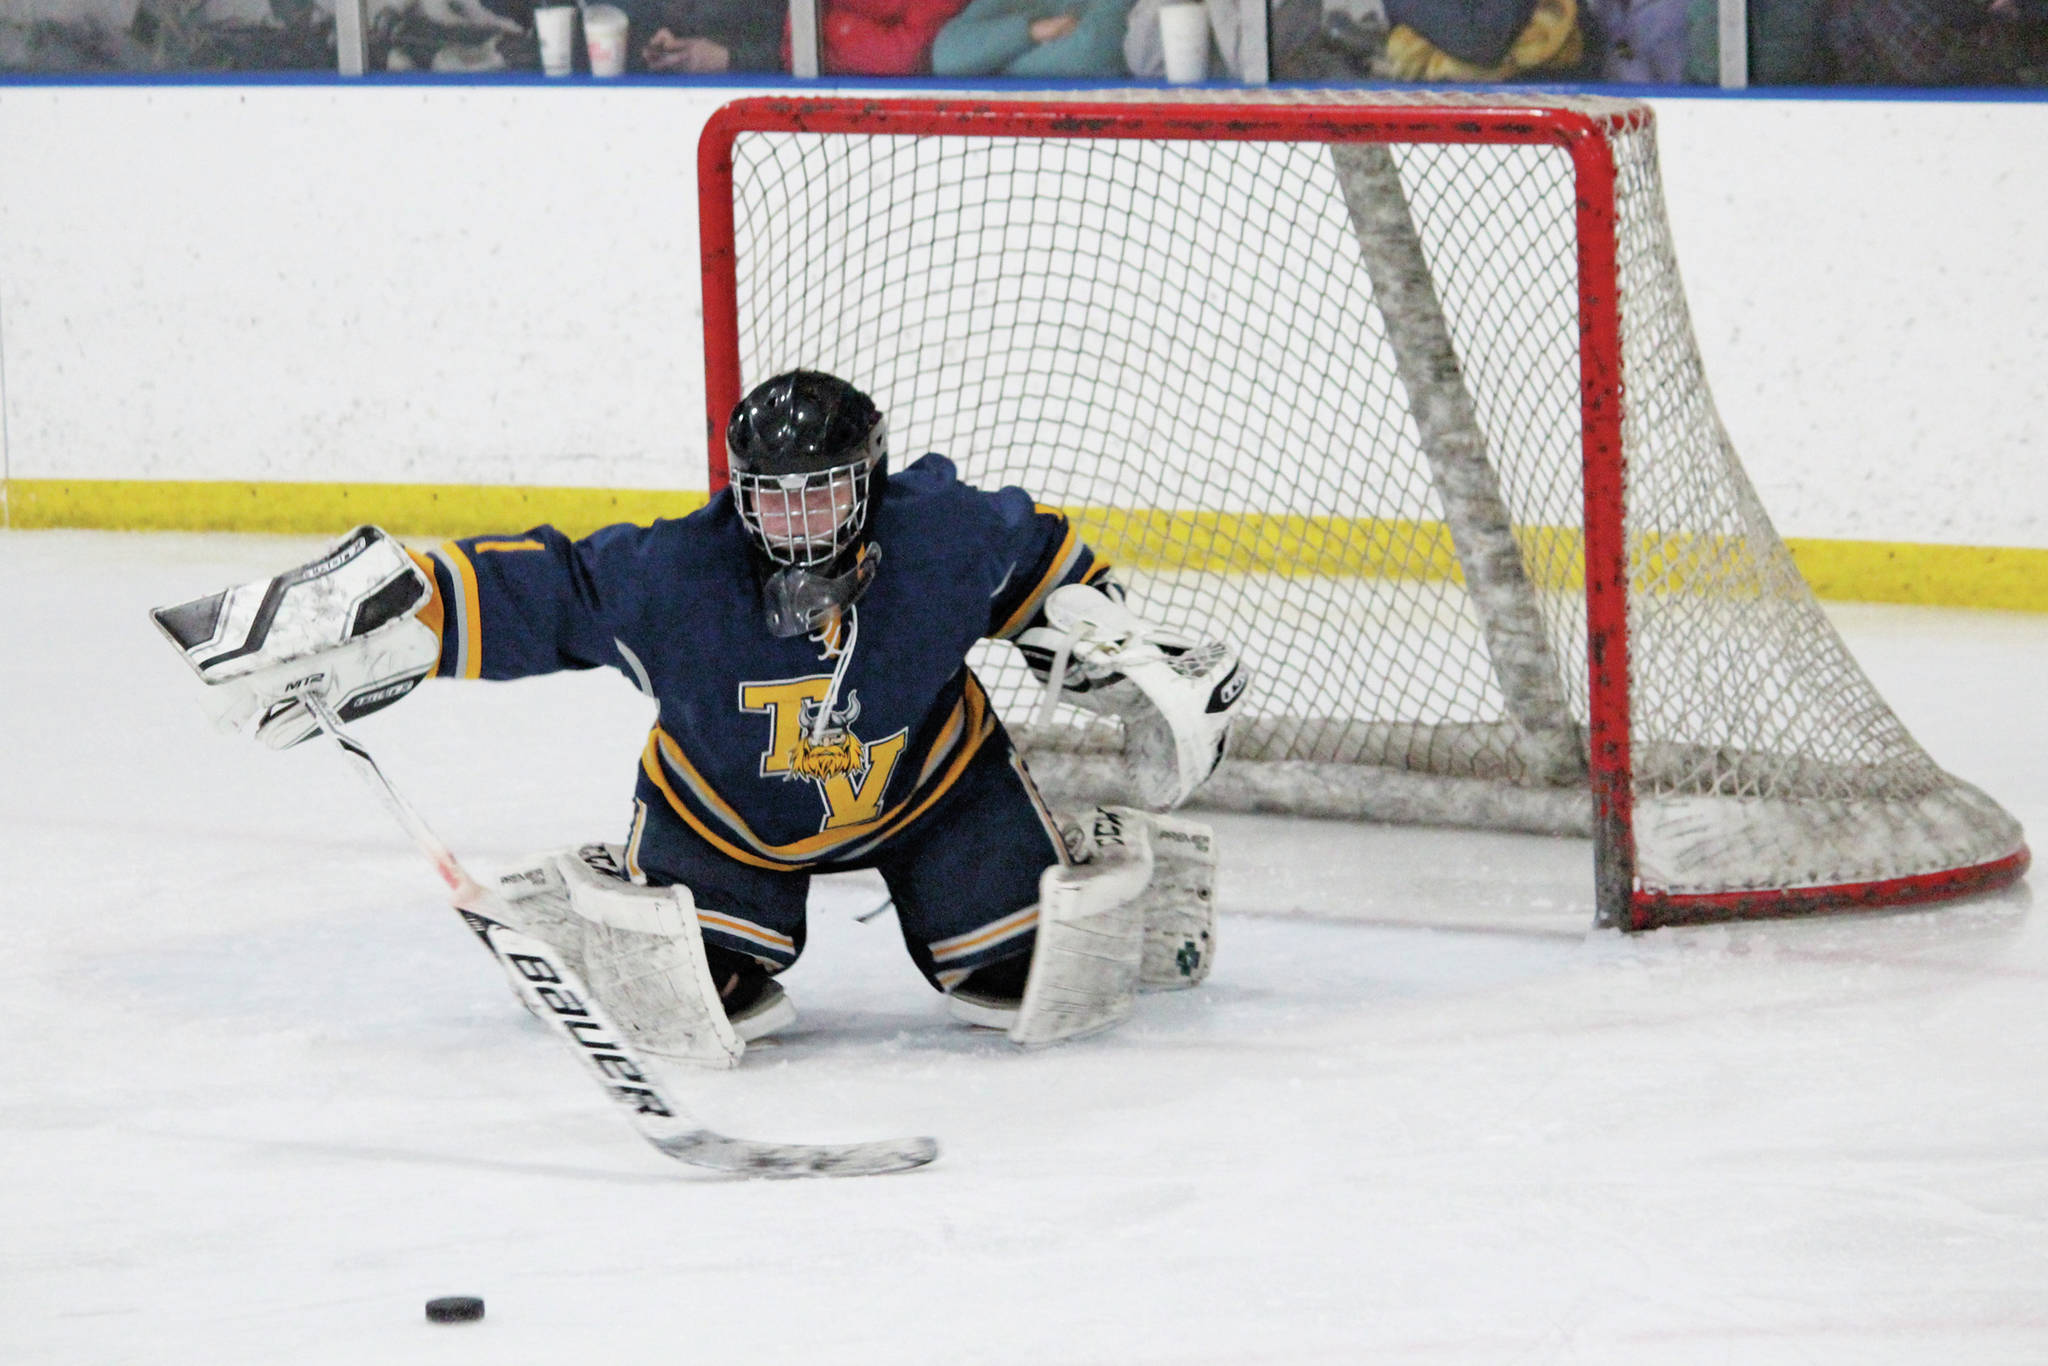 Tri-Valley School goaltender Danny Renshaw reaches out to block the puck during a Thursday, Jan. 30, 2020 hockey game against Homer High School at Kevin Bell Arena in Homer, Alaska. (Photo by Megan Pacer/Homer News)